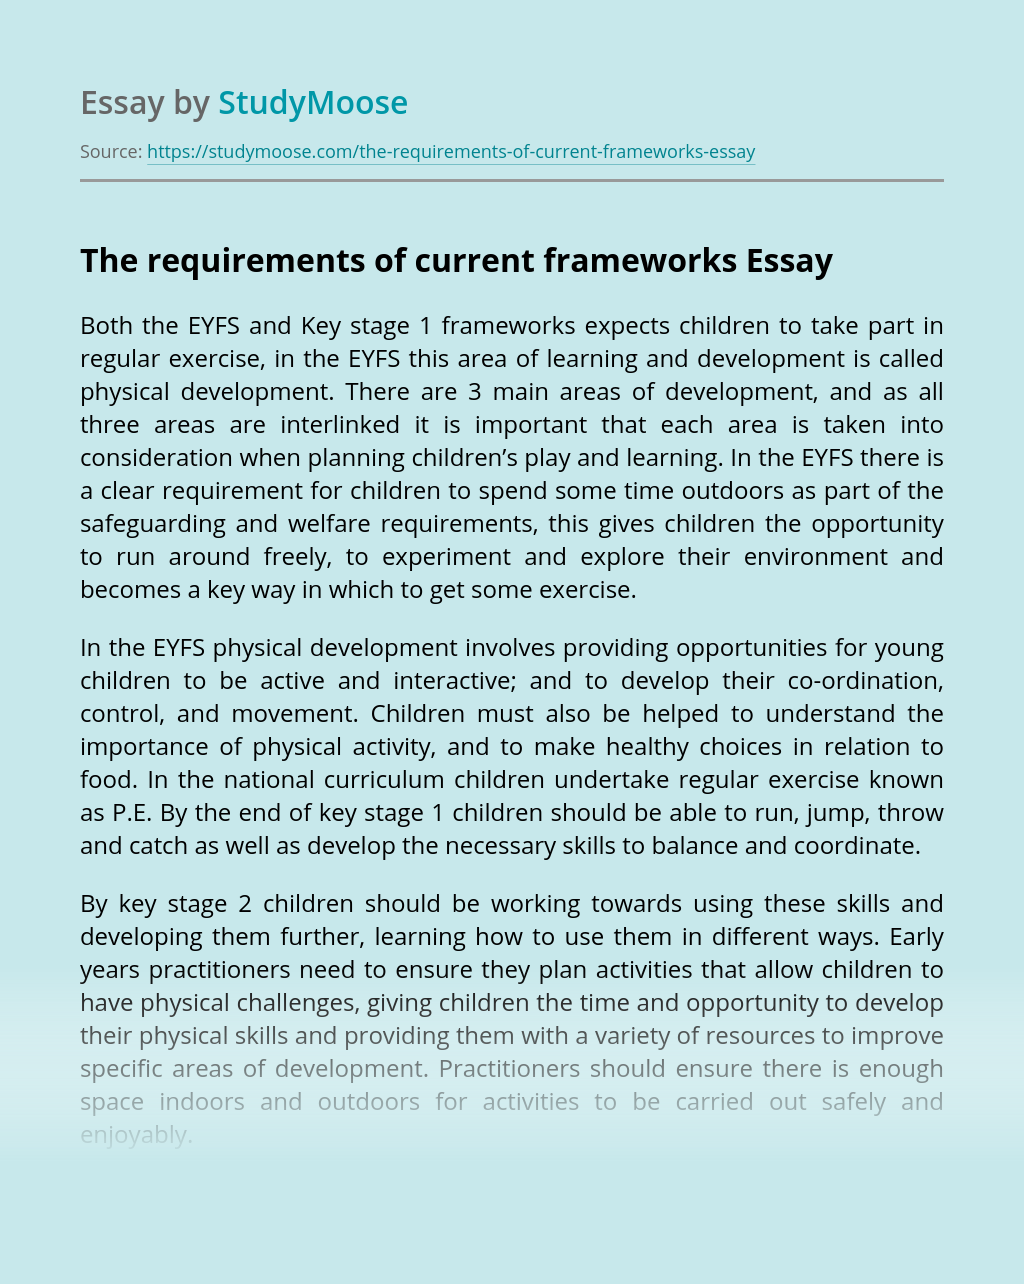 The Requirements of Current Frameworks